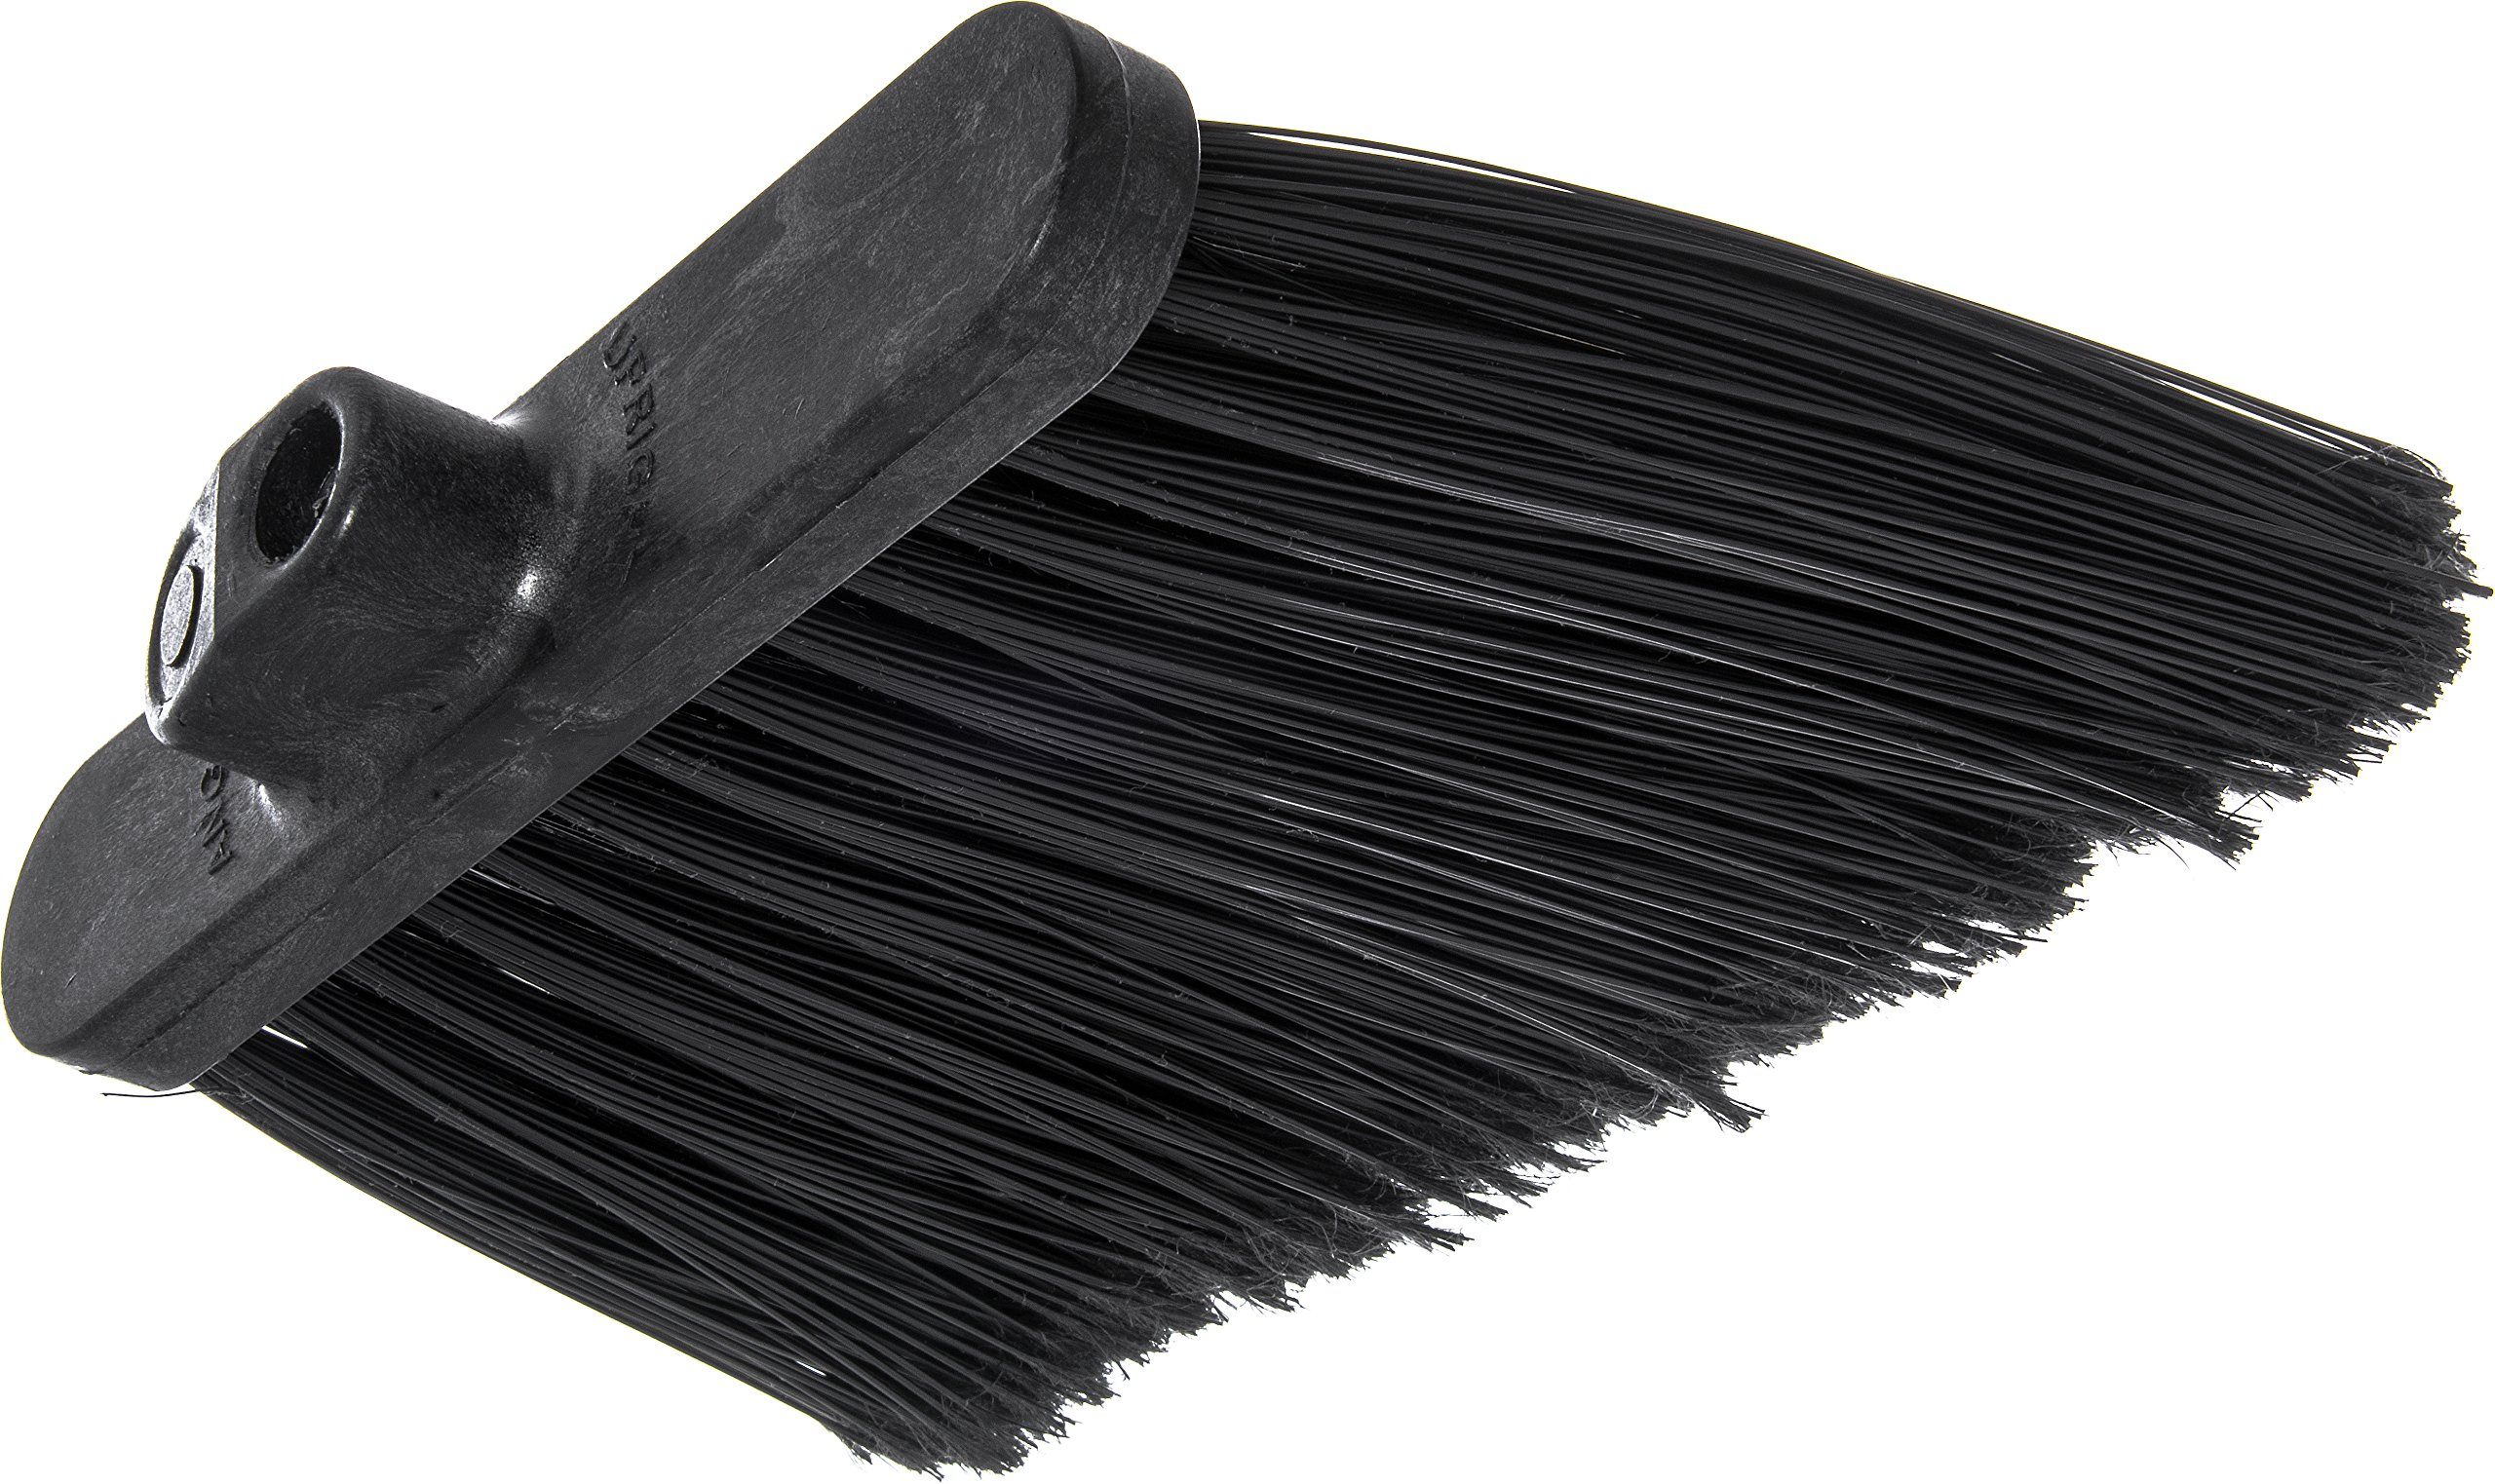 Carlisle 3686703 Duo-Sweep Medium Duty Flagged Angle Broom Head, Polypropylene Bristle, 8'' Overall Length x 12'' Width, Black (Case of 12) by Carlisle (Image #2)